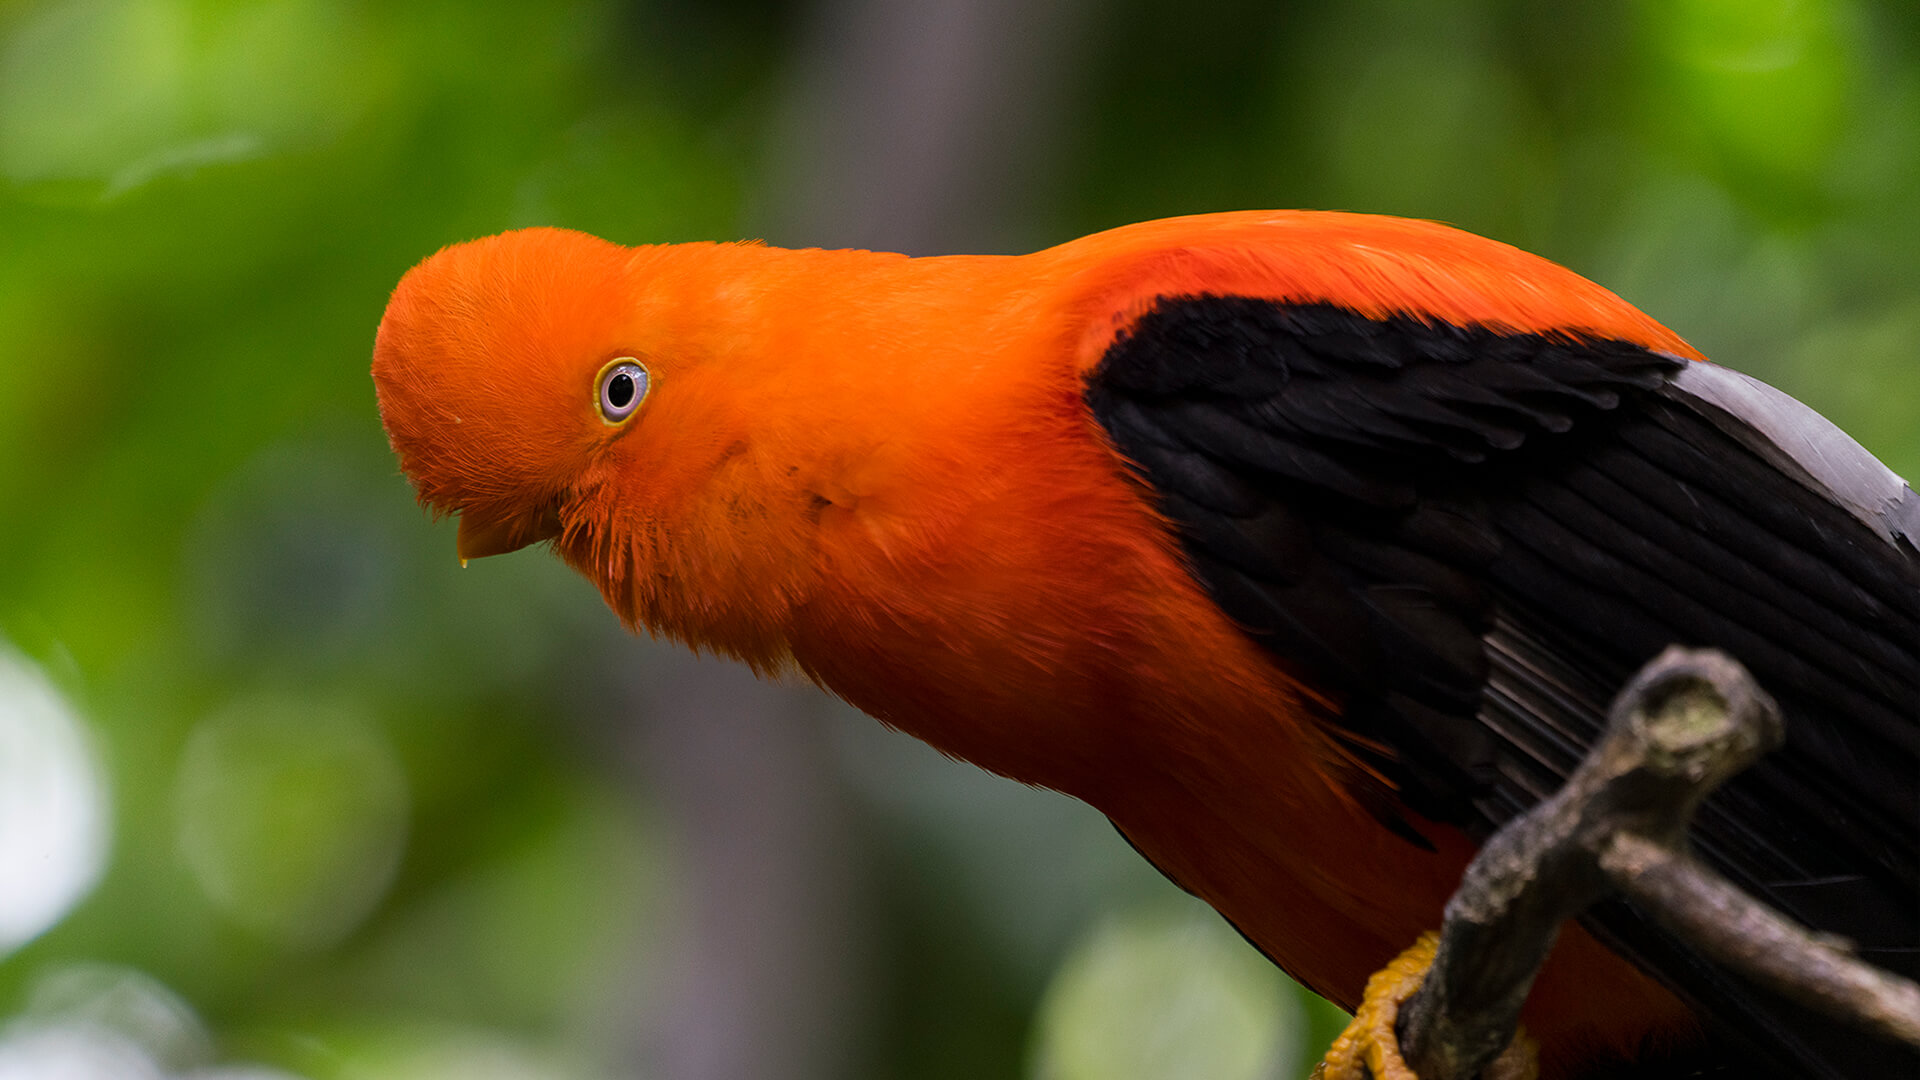 Male cock-of-the-rock